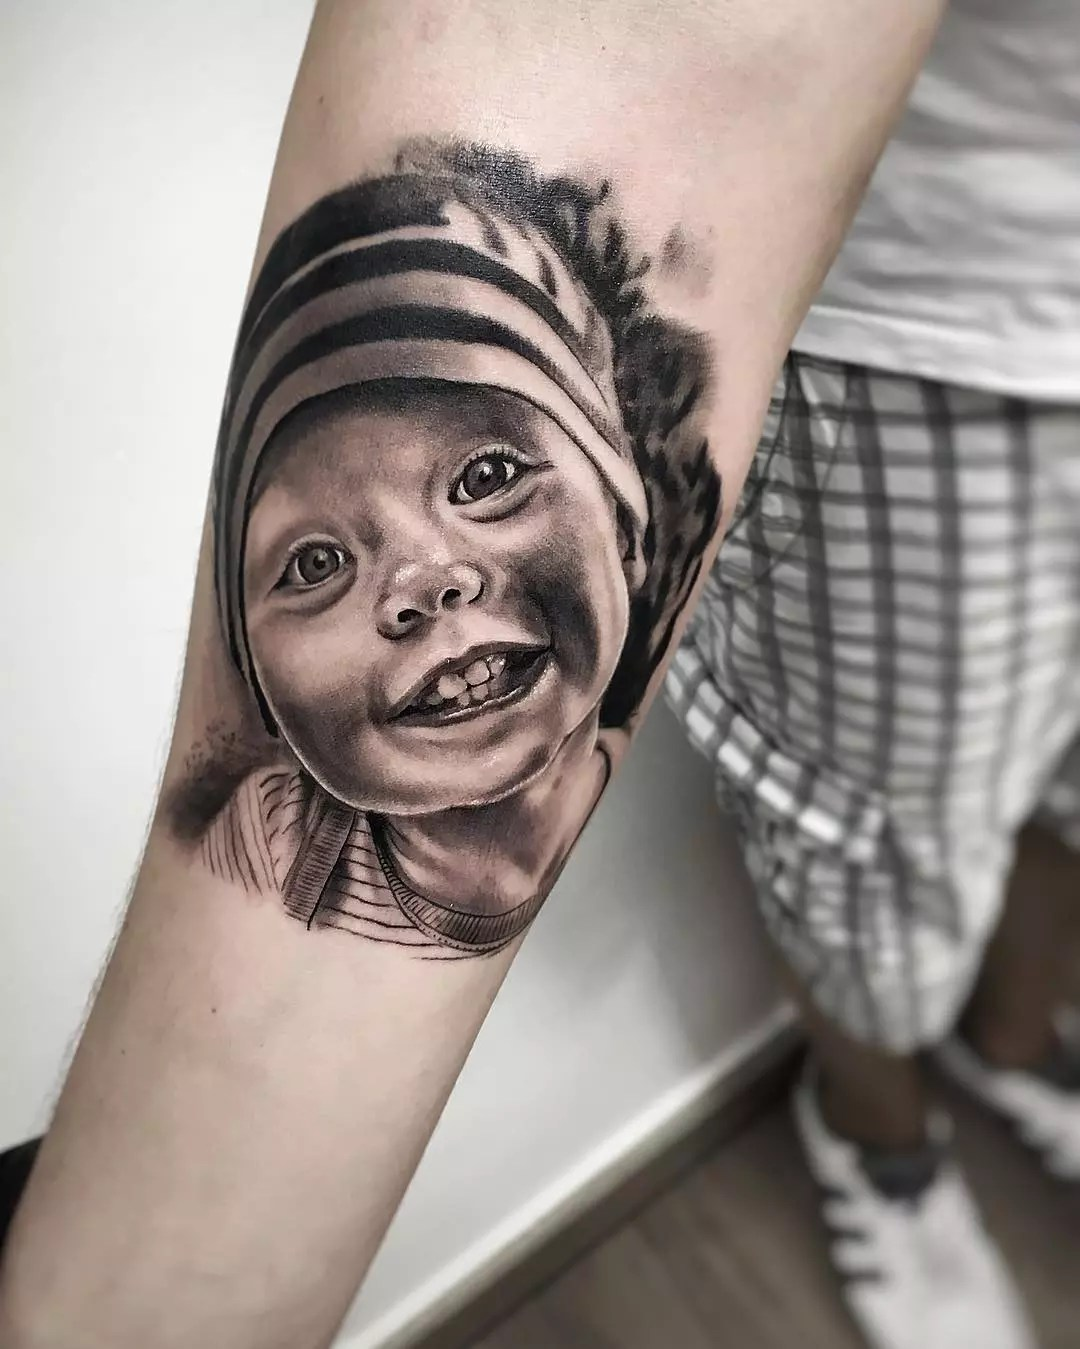 65 Rousing Family Tattoo Ideas – Using Art to Honor Your Loved Ones of 38 by William